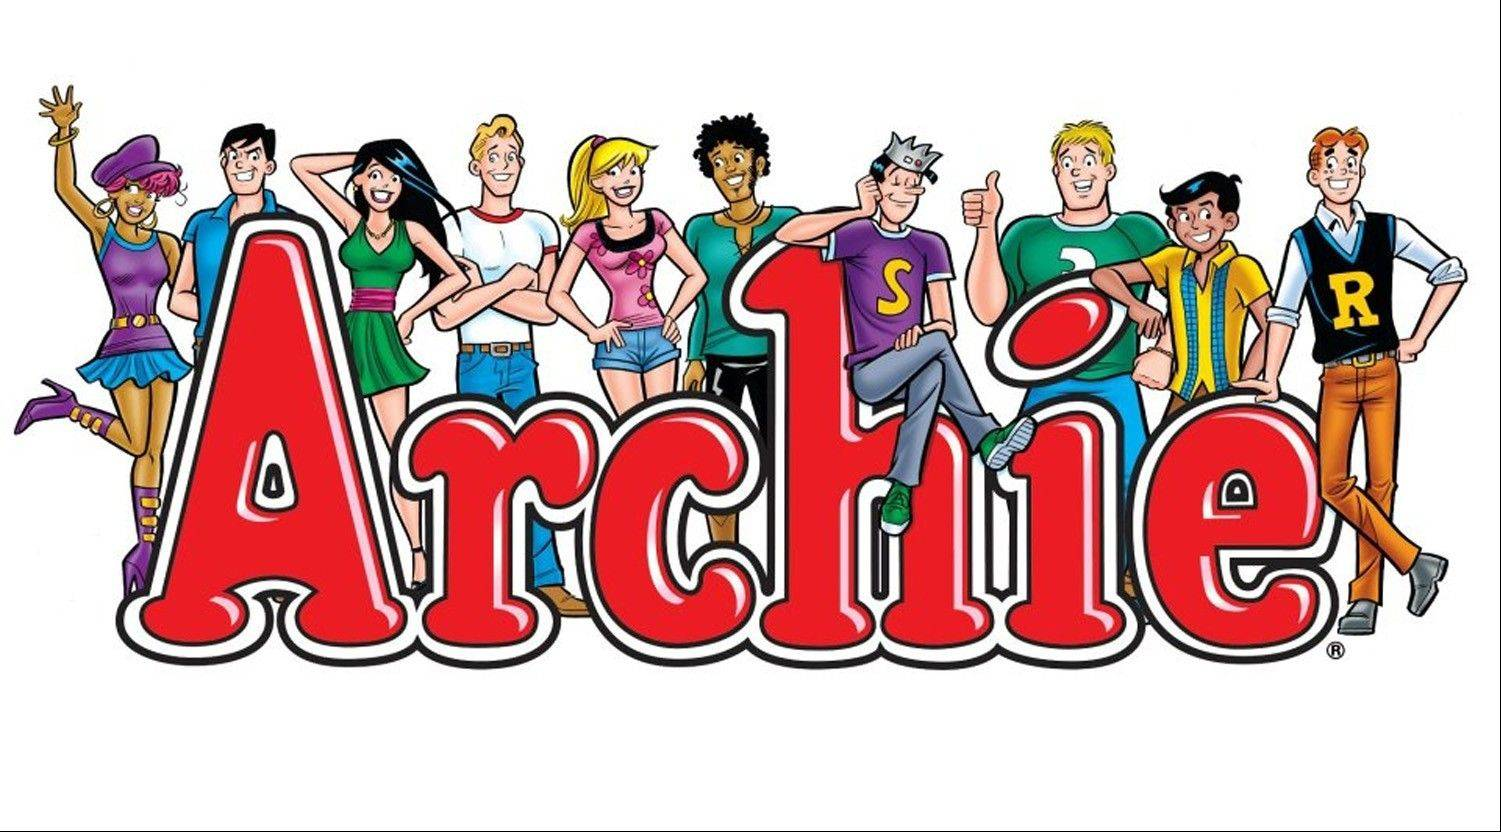 Archie Comics has announced that Warner Bros. will produce a live-action film based on the comic's characters, including Archie, Betty, Veronica and Jughead.